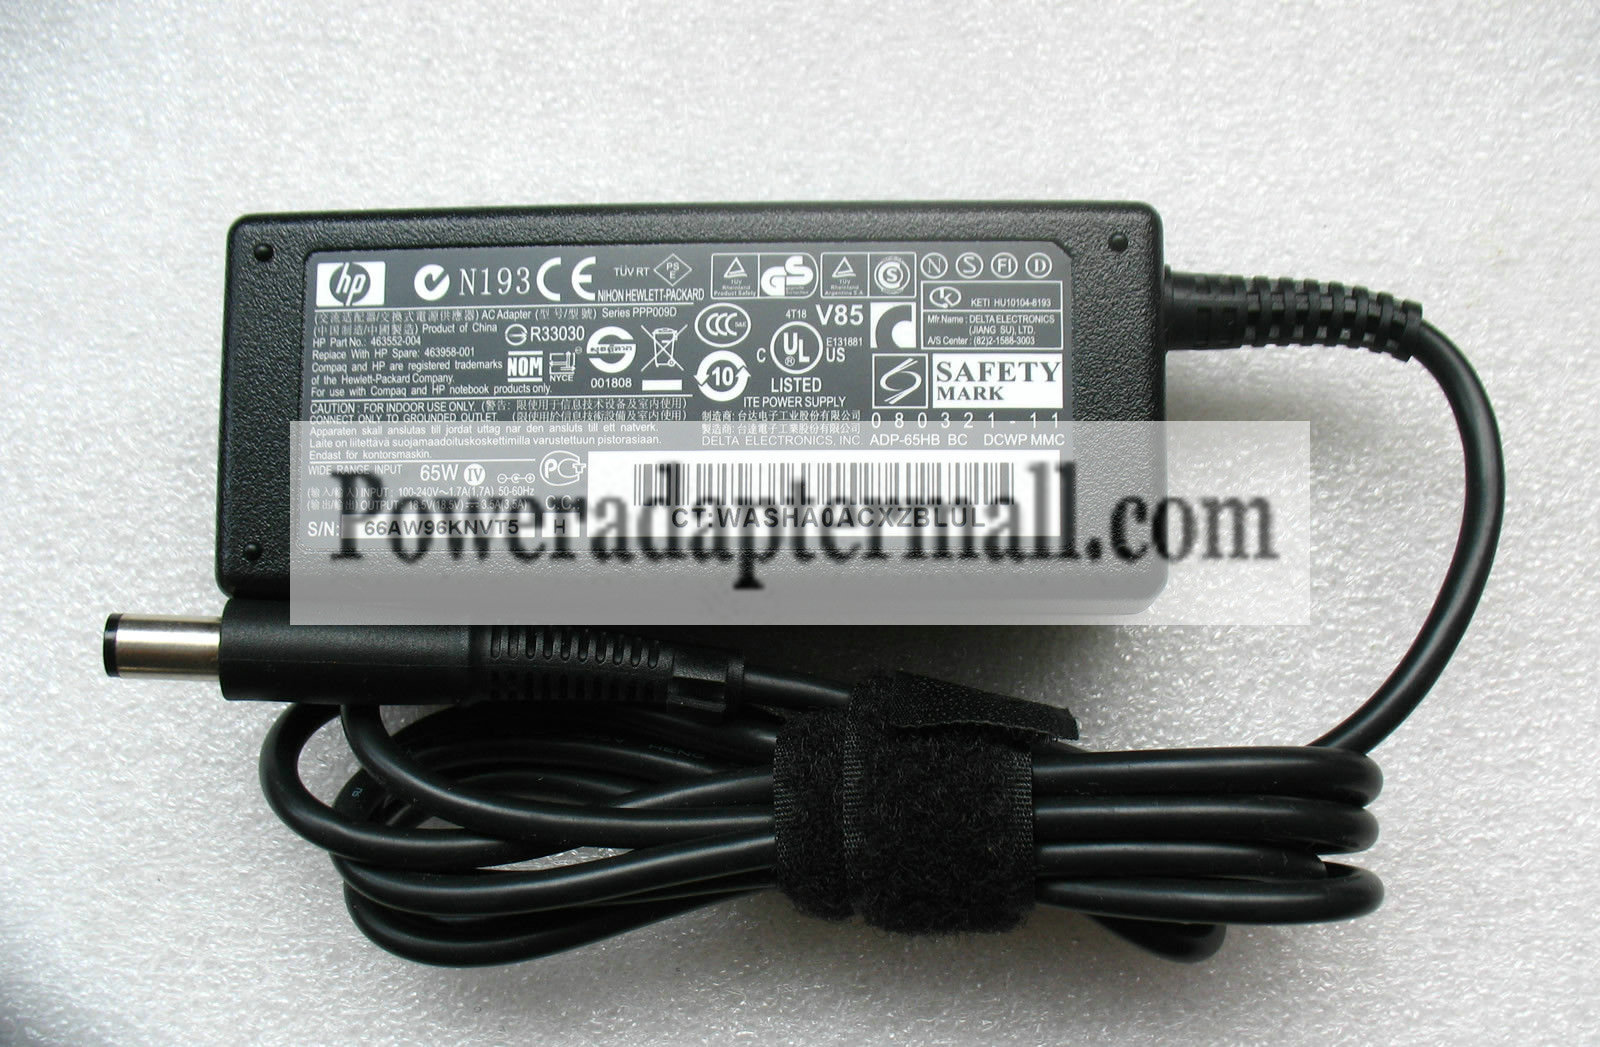 18.5V 3.5A HP Compaq tc4200 tc4400 Tablet PC Laptop AC Adapter